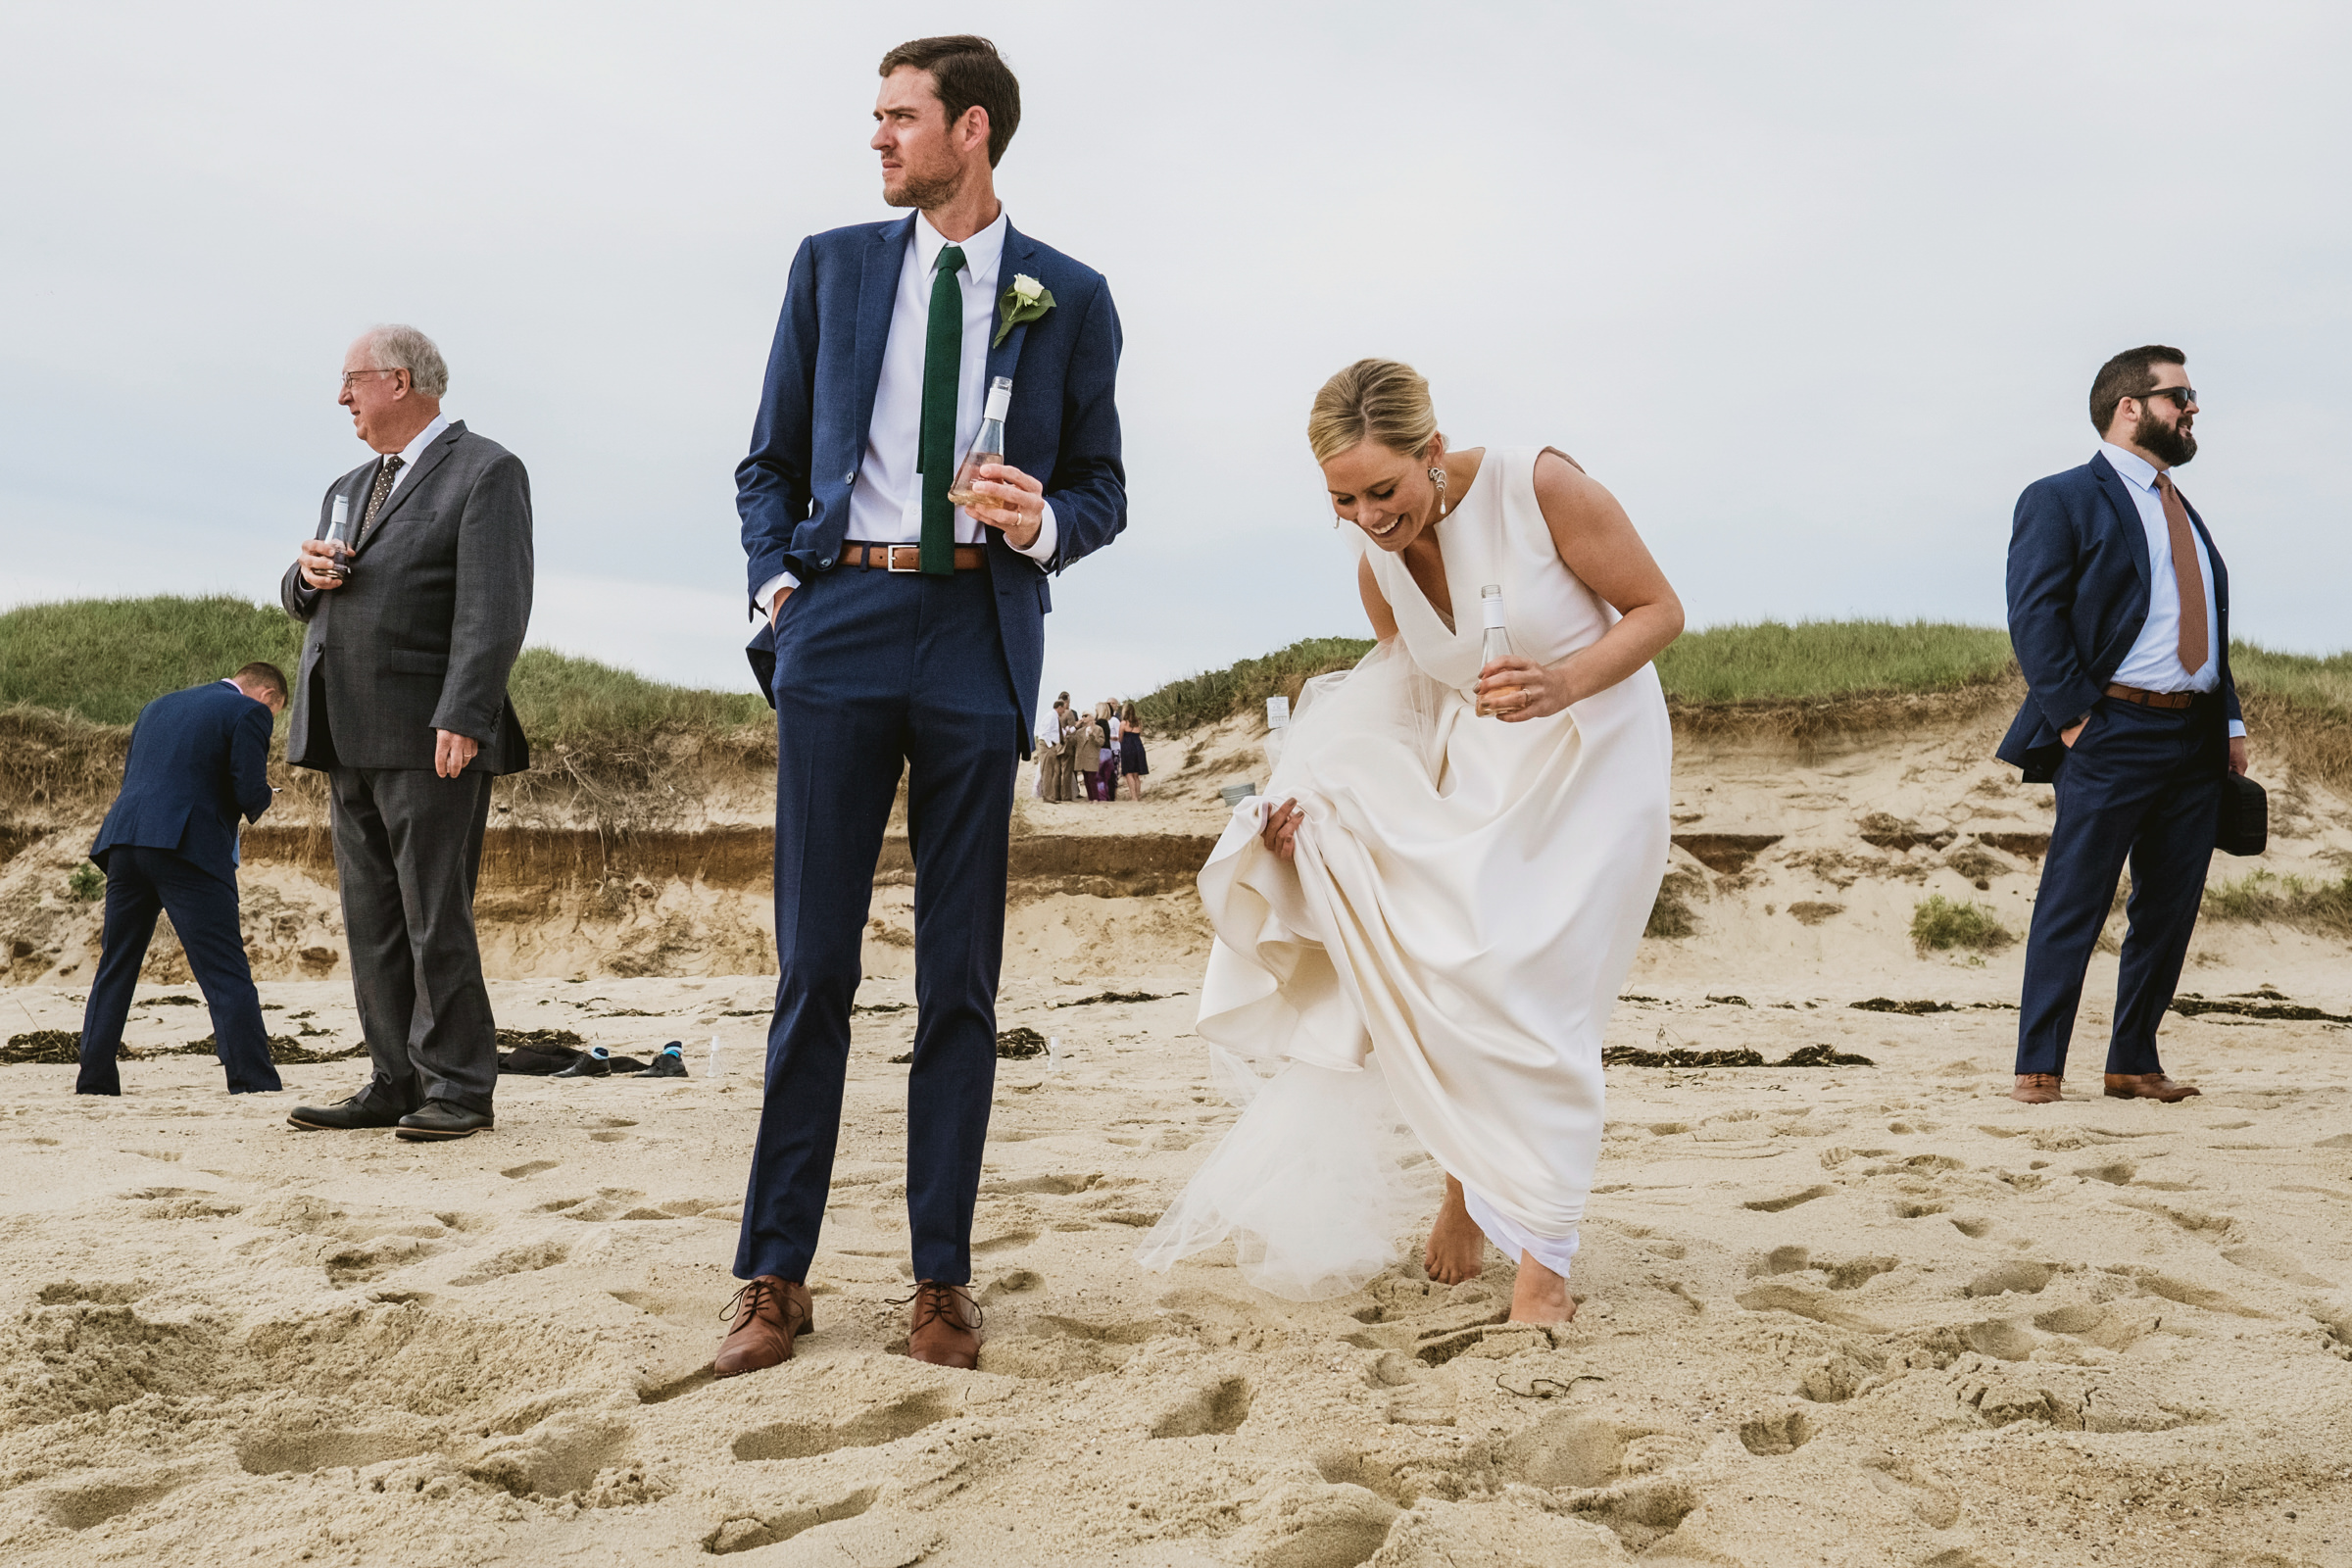 Couple and guests on the beach - photo by York Place Studios